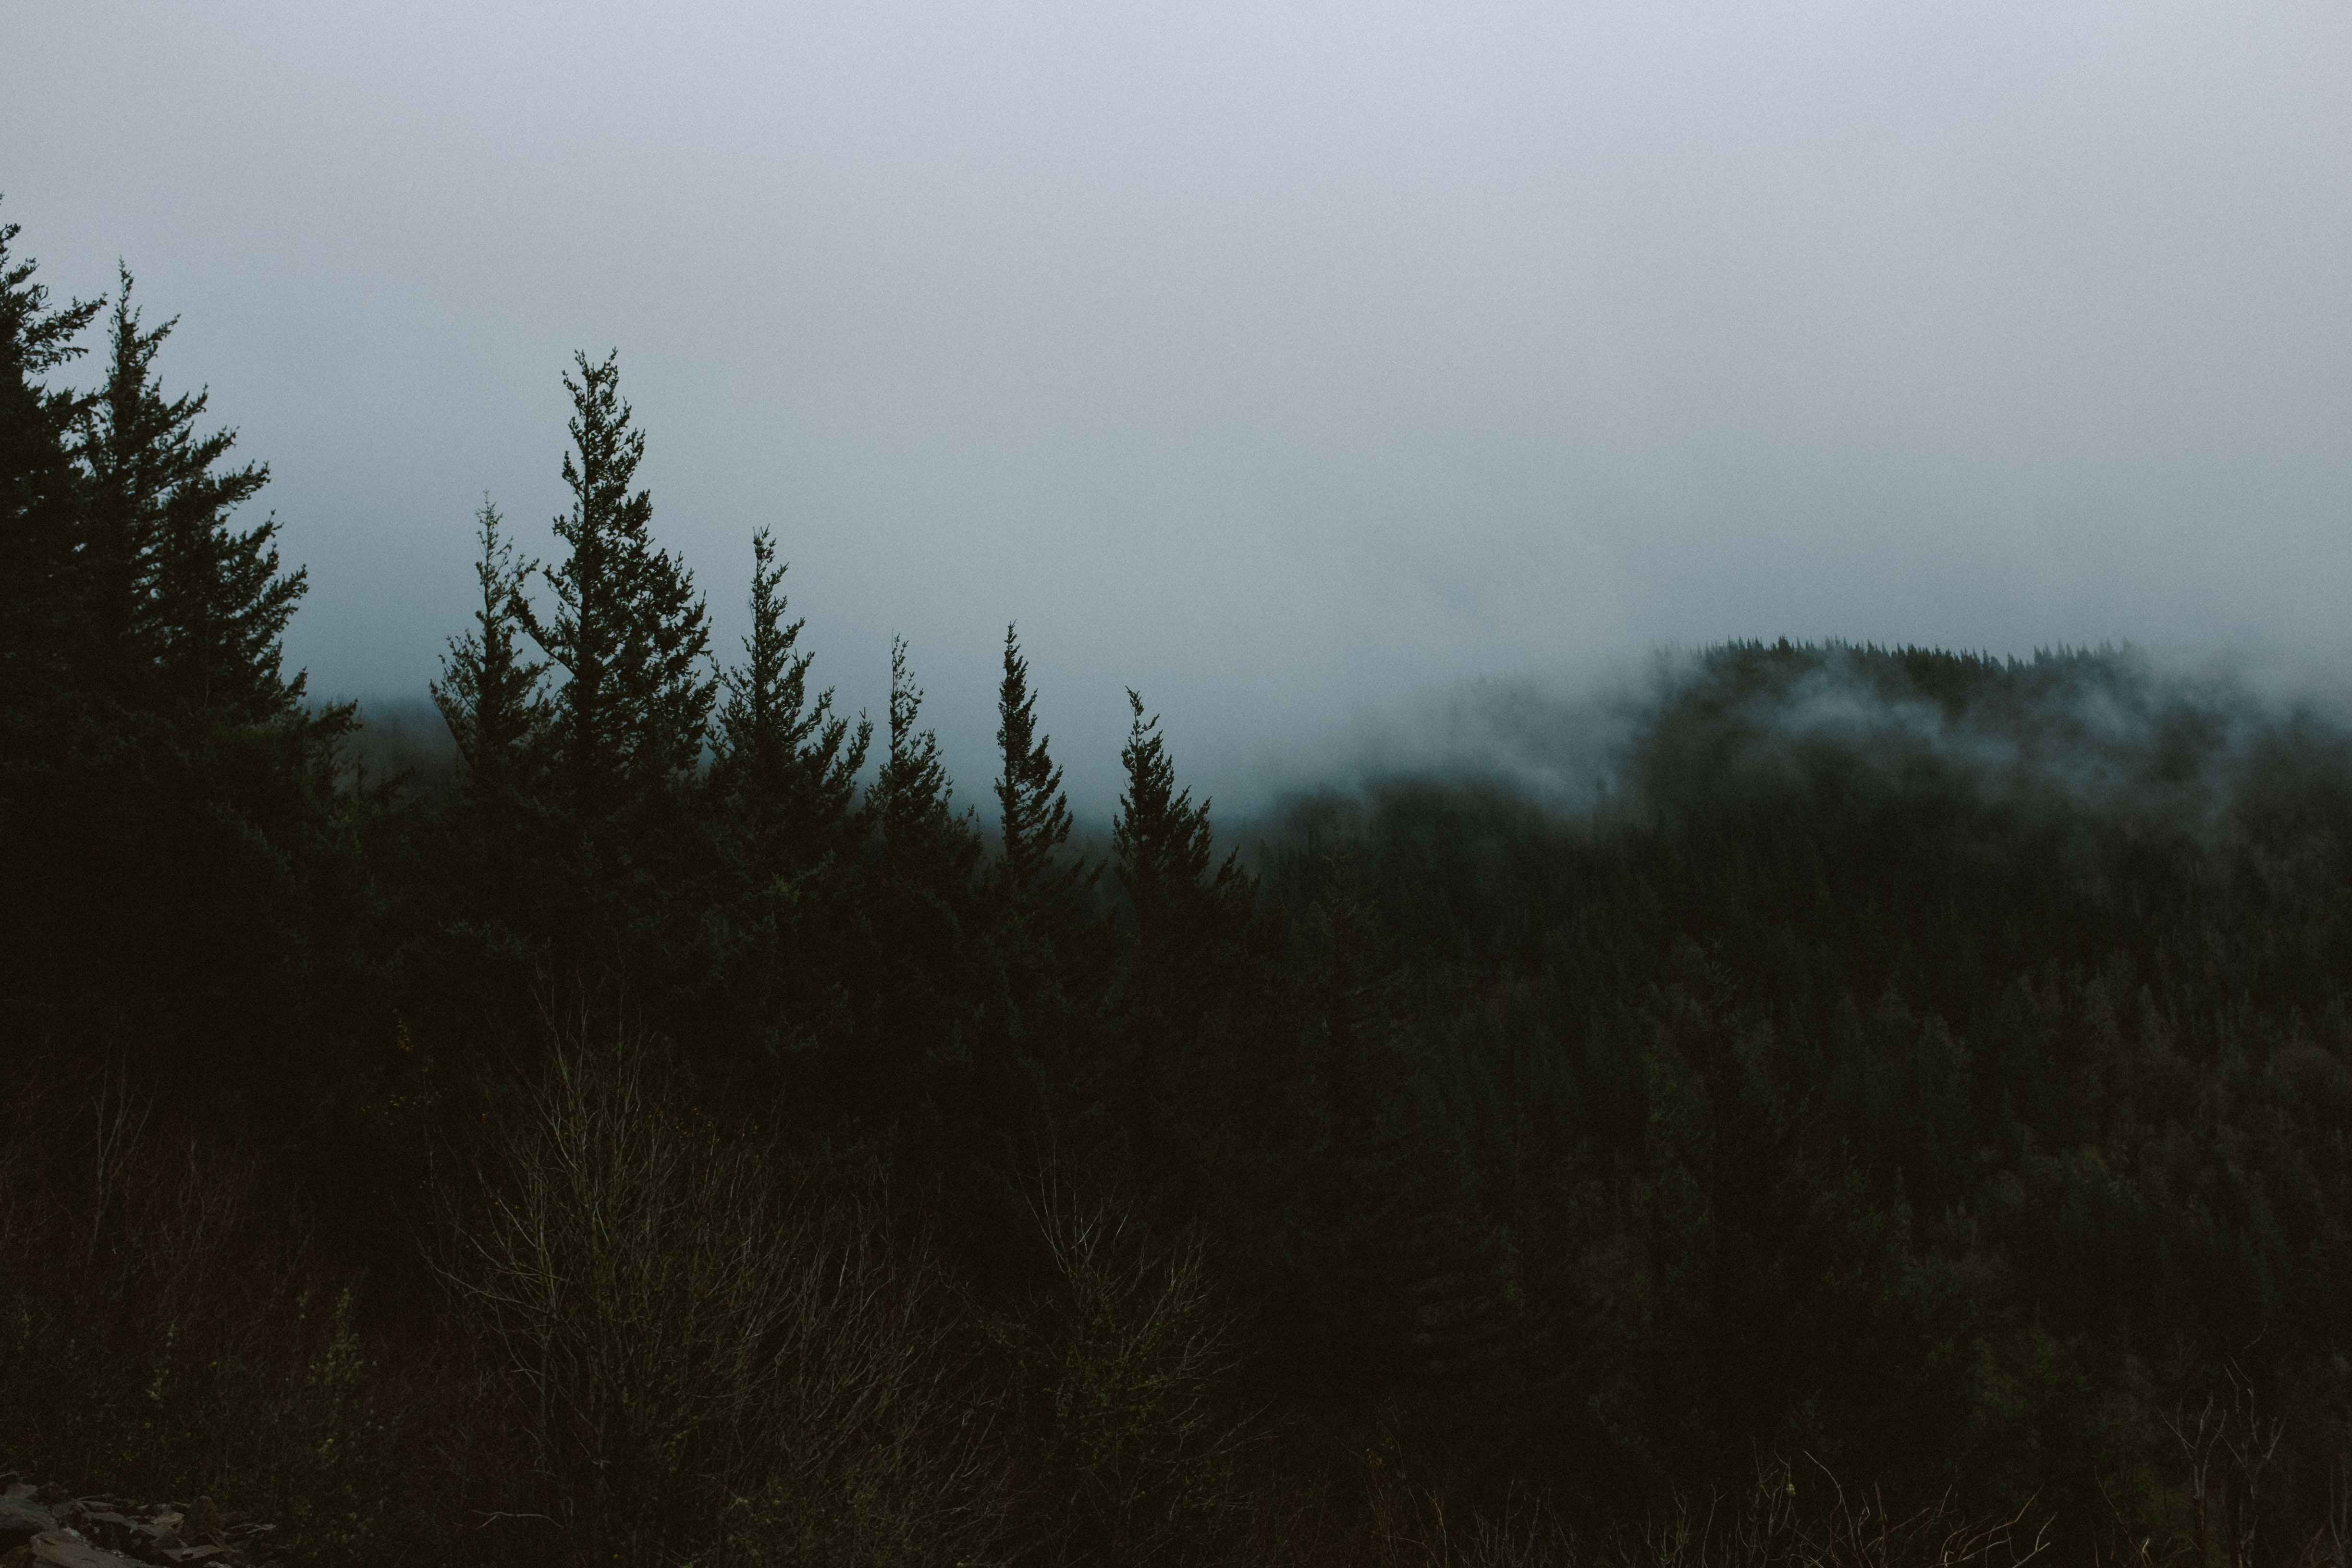 Fog over a dark coniferous forest